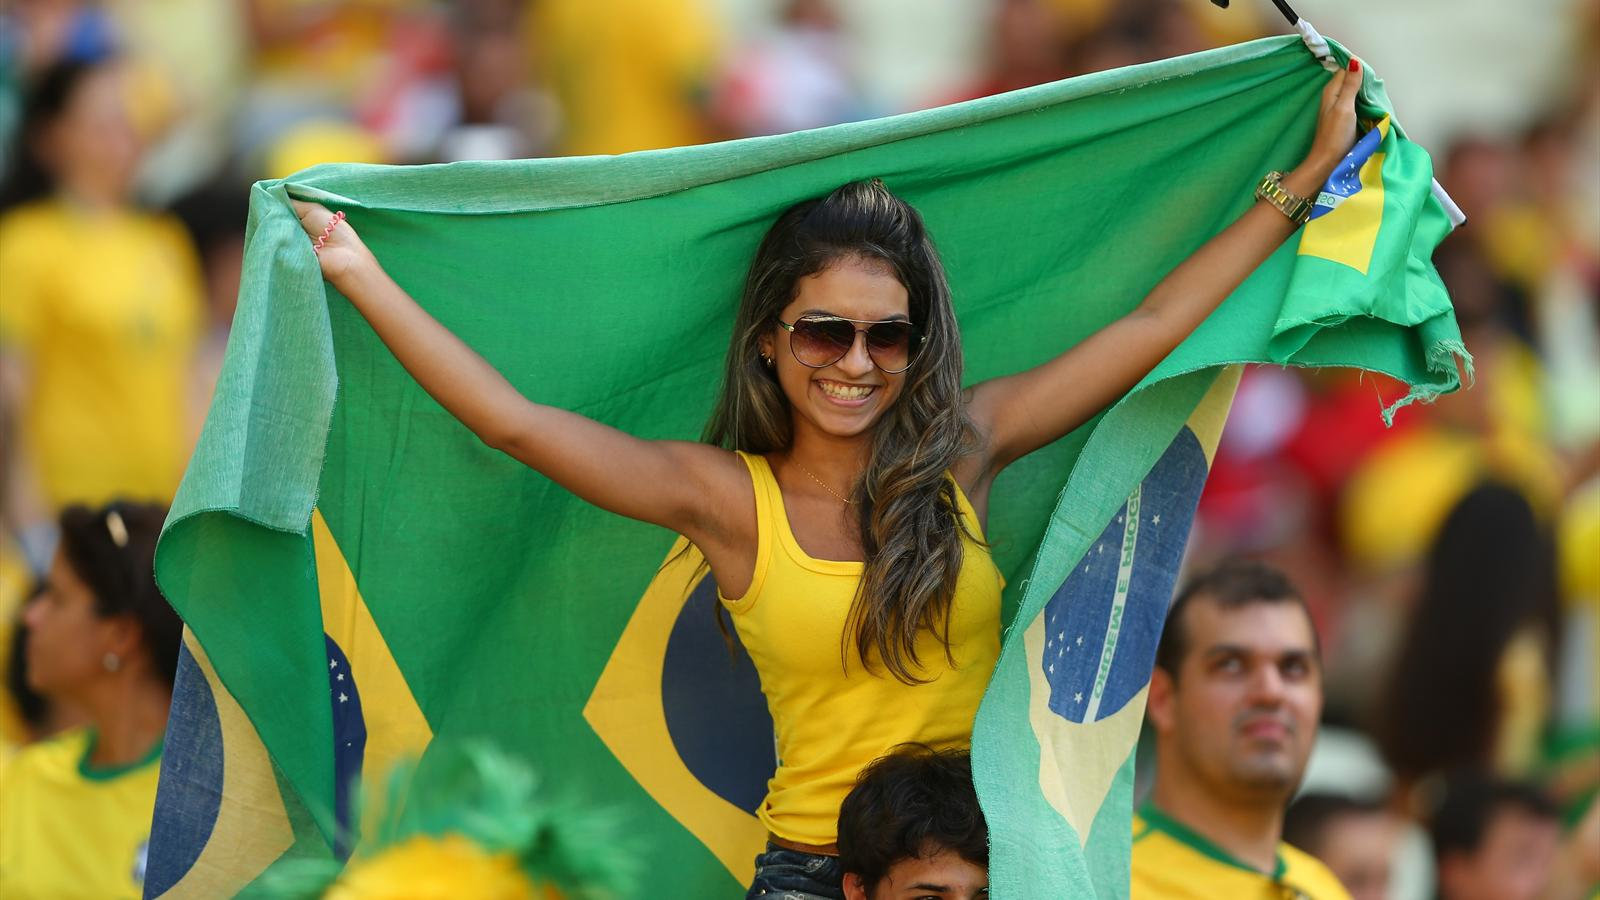 Recife may be only 2014 World Cup venue without fan fest - World Cup 2014 - Football - Eurosport ...